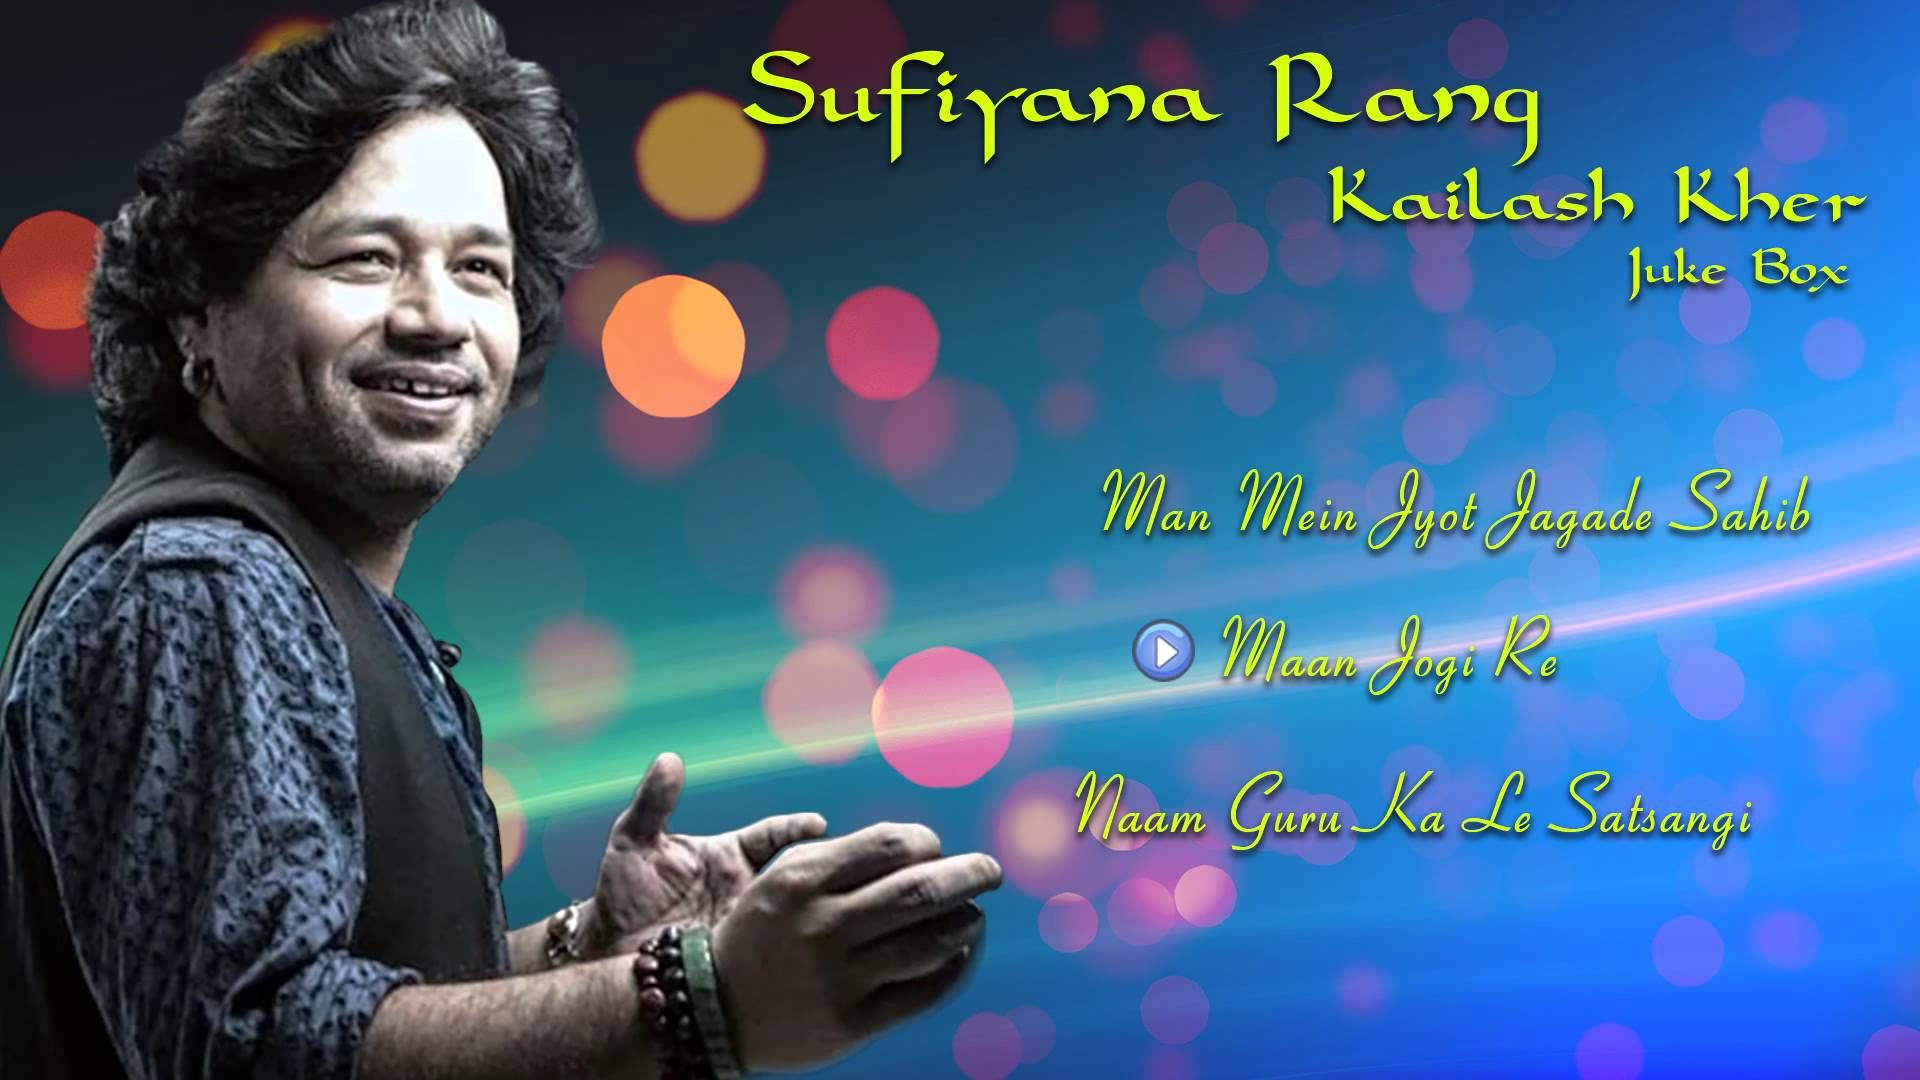 Best Kailash Kher Meri Maa Song Dailymotion Image Collection